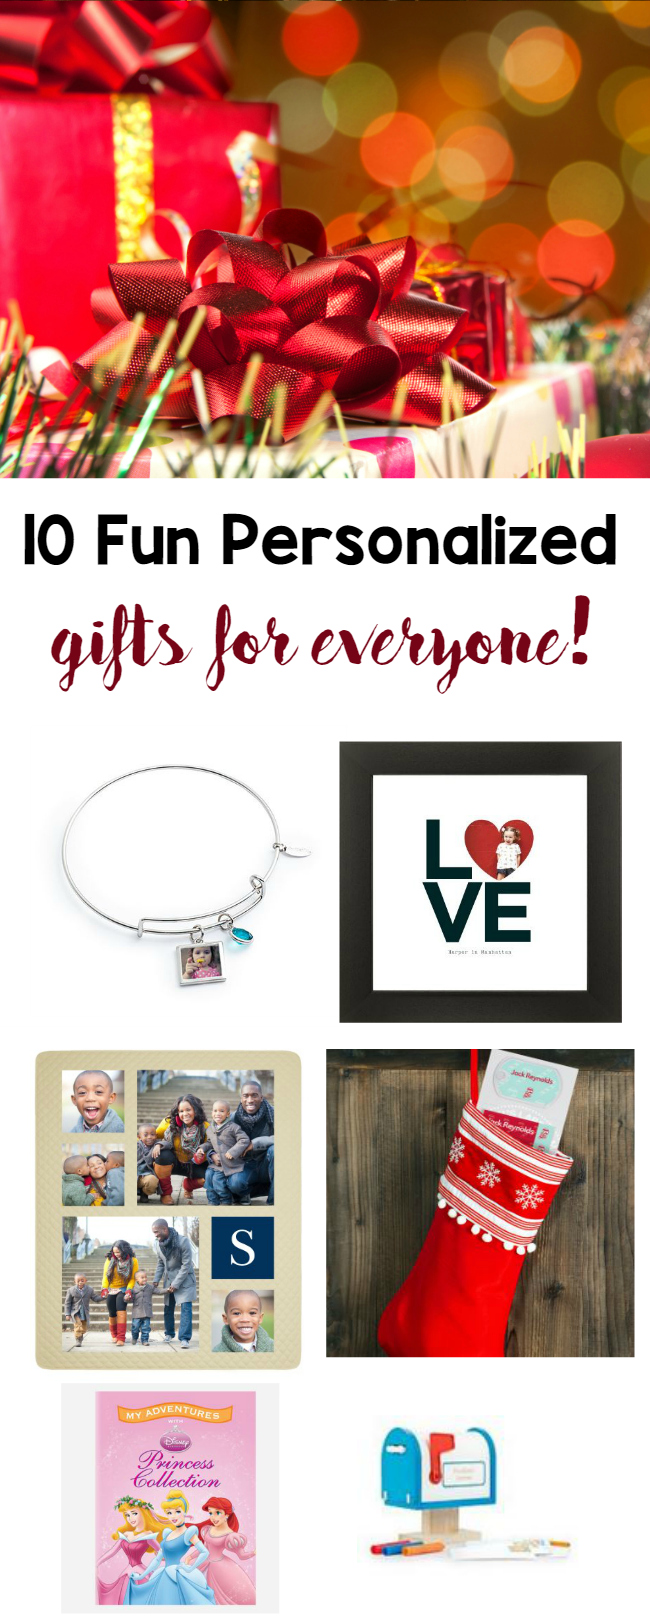 10 fun personalized gifts for everyone